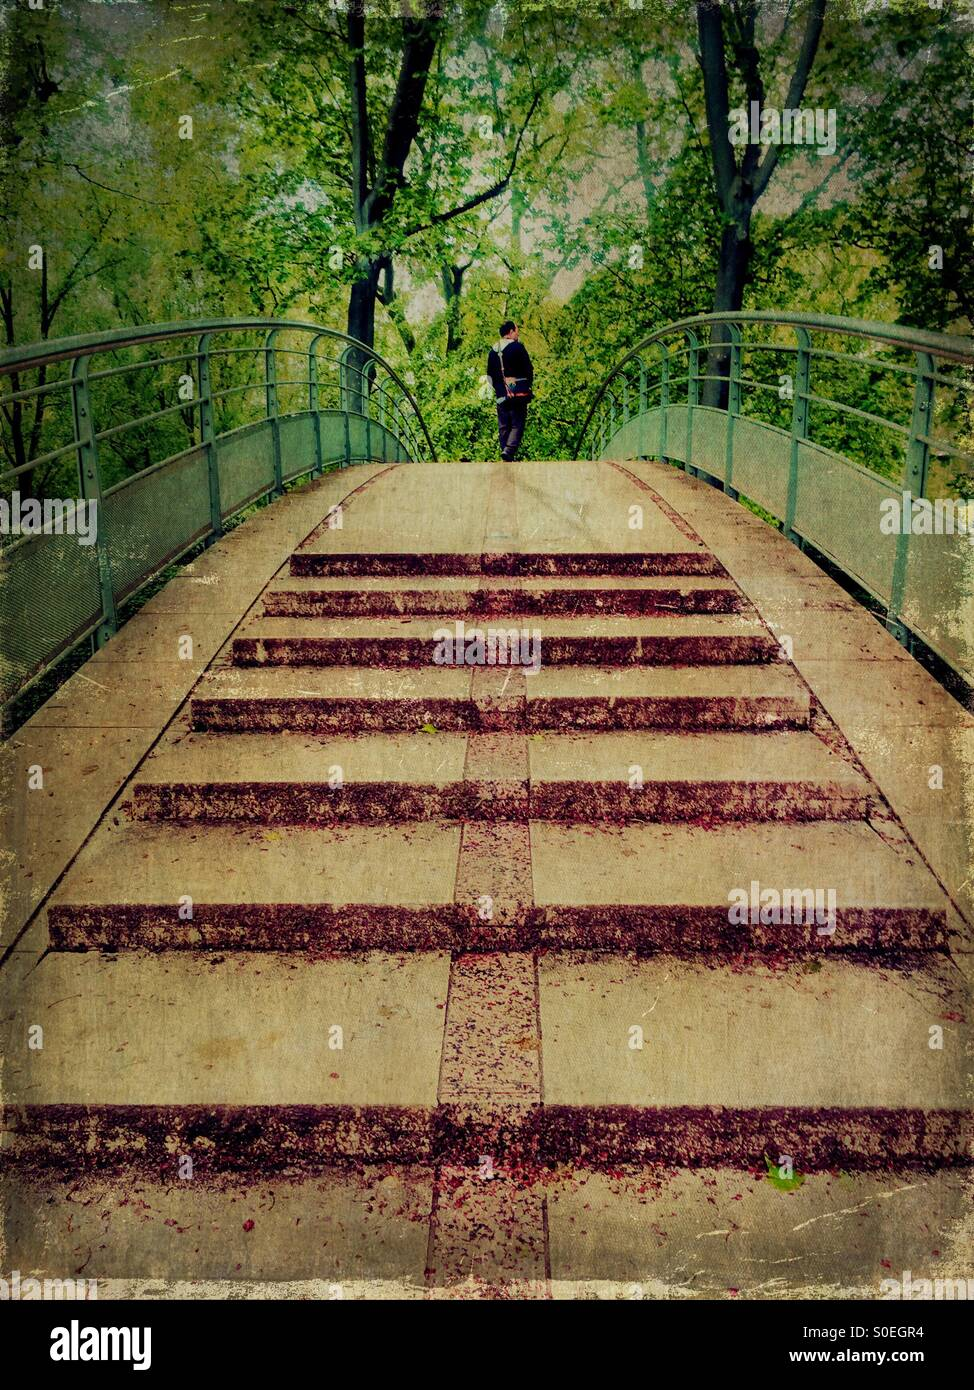 Man crossing an overpass pedestrian bridge at Bercy in Paris, France. Vintage texture overlay. Stock Photo